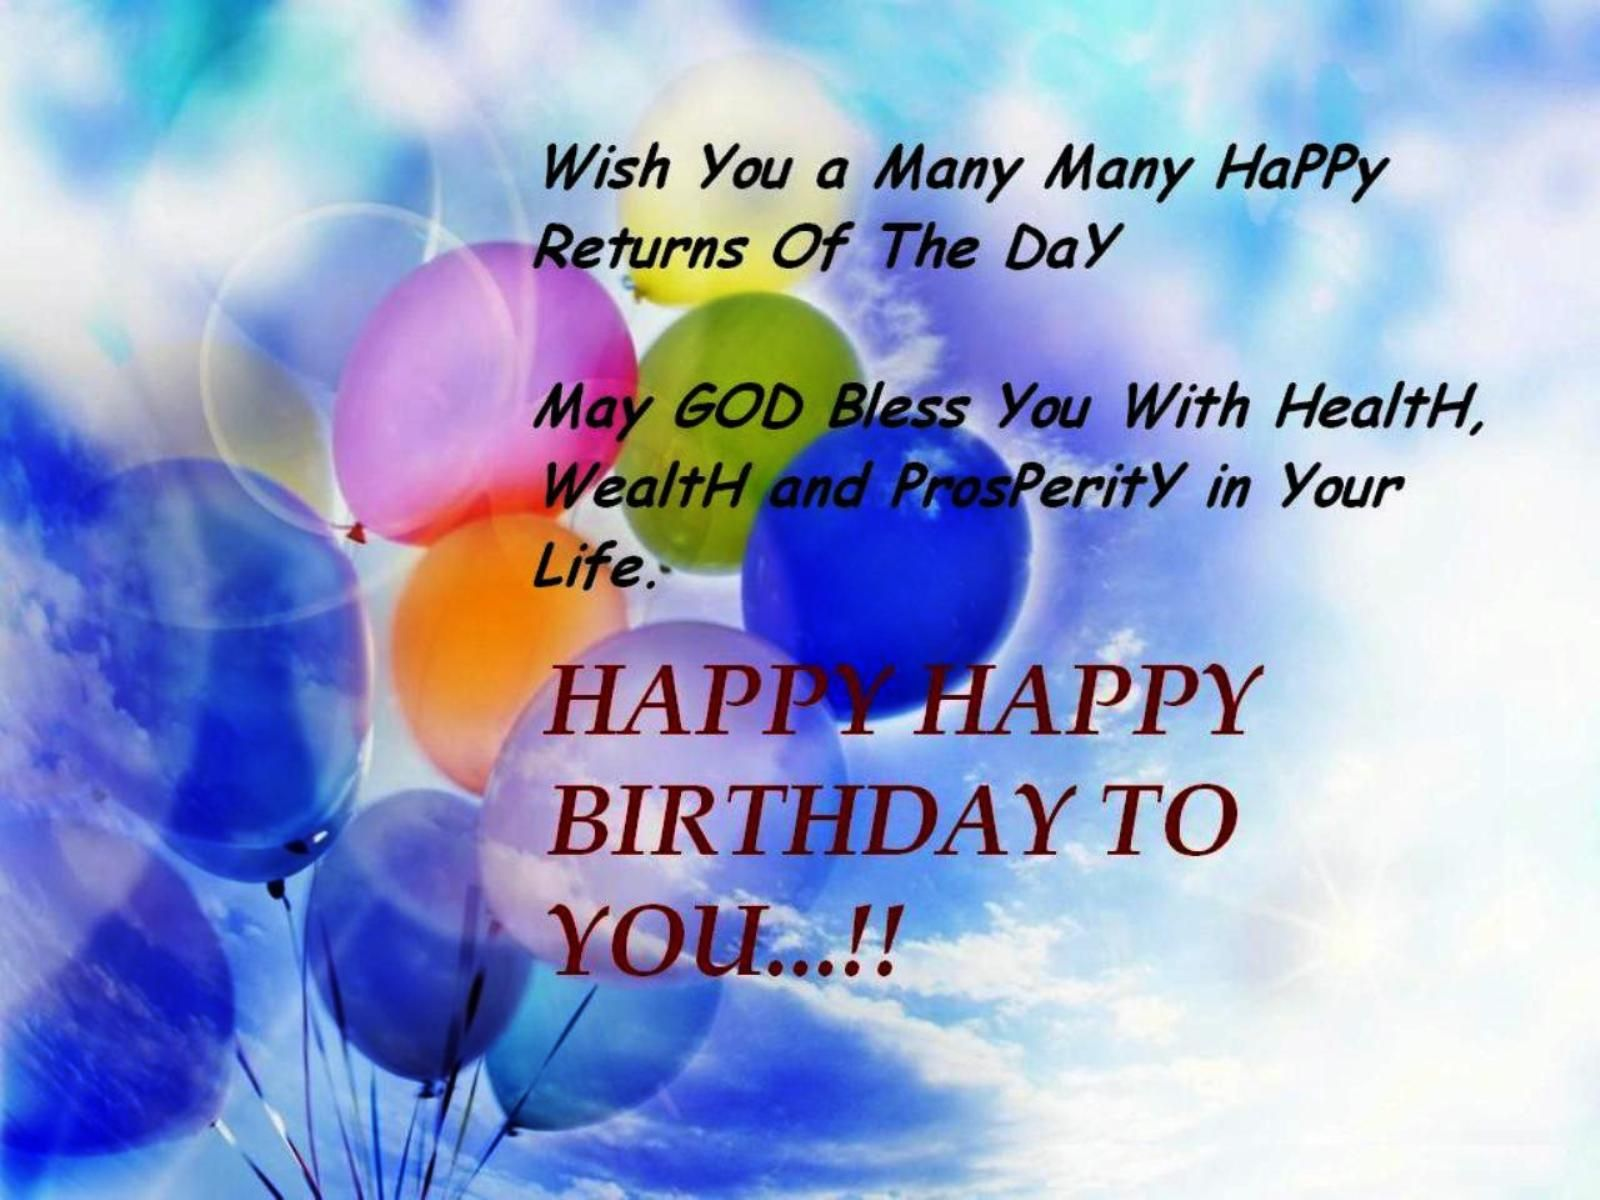 Happy birthday wishes quotes birthday wishes greetings happy birthday wishes quotes birthday wishes greetings m4hsunfo